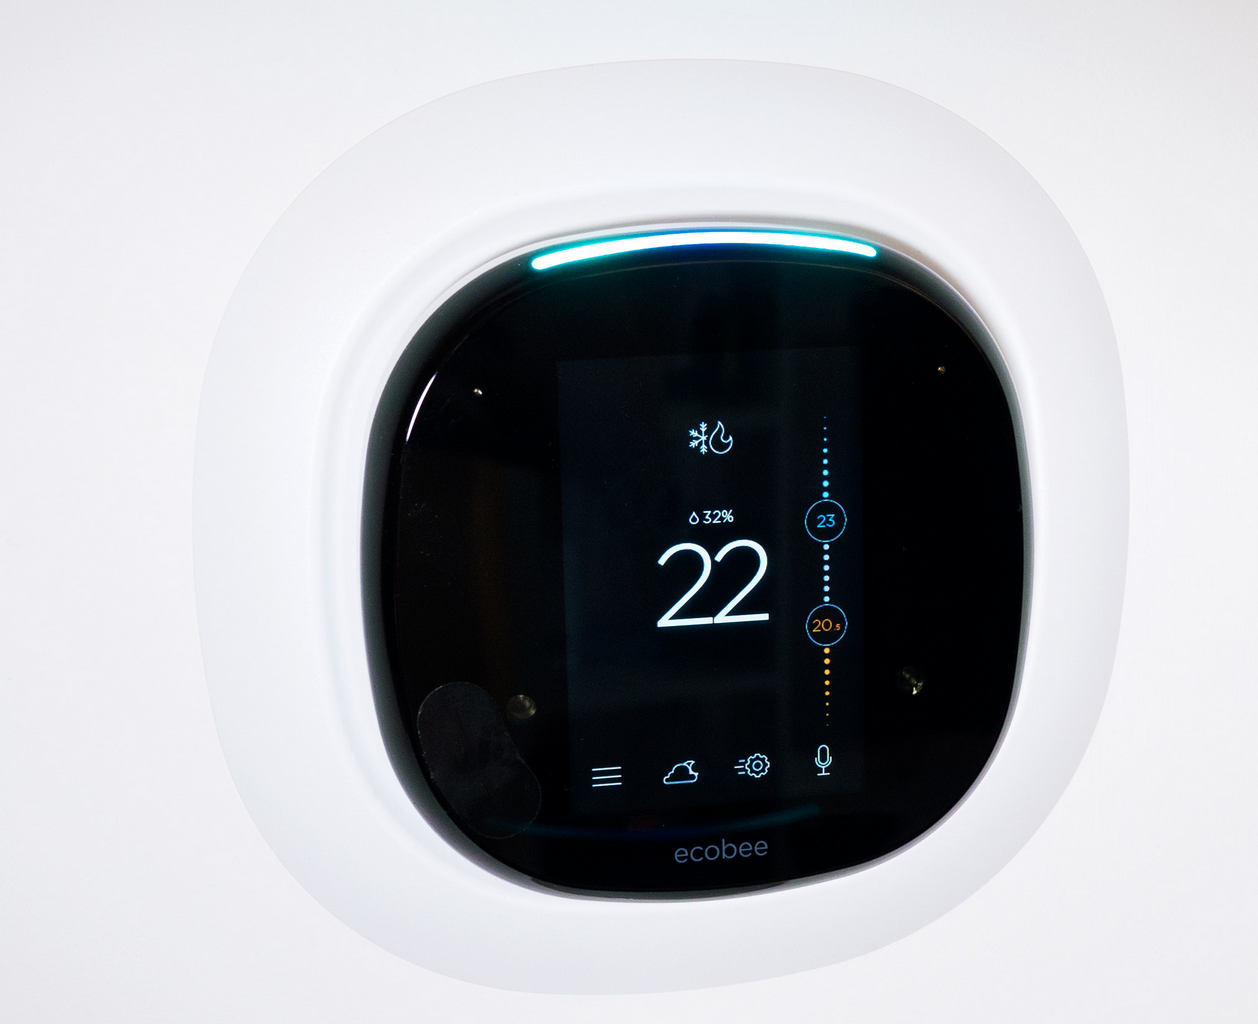 Ecobee_4_Smart_Thermostat_with_built-in_Alexa_wall_mount.PNG